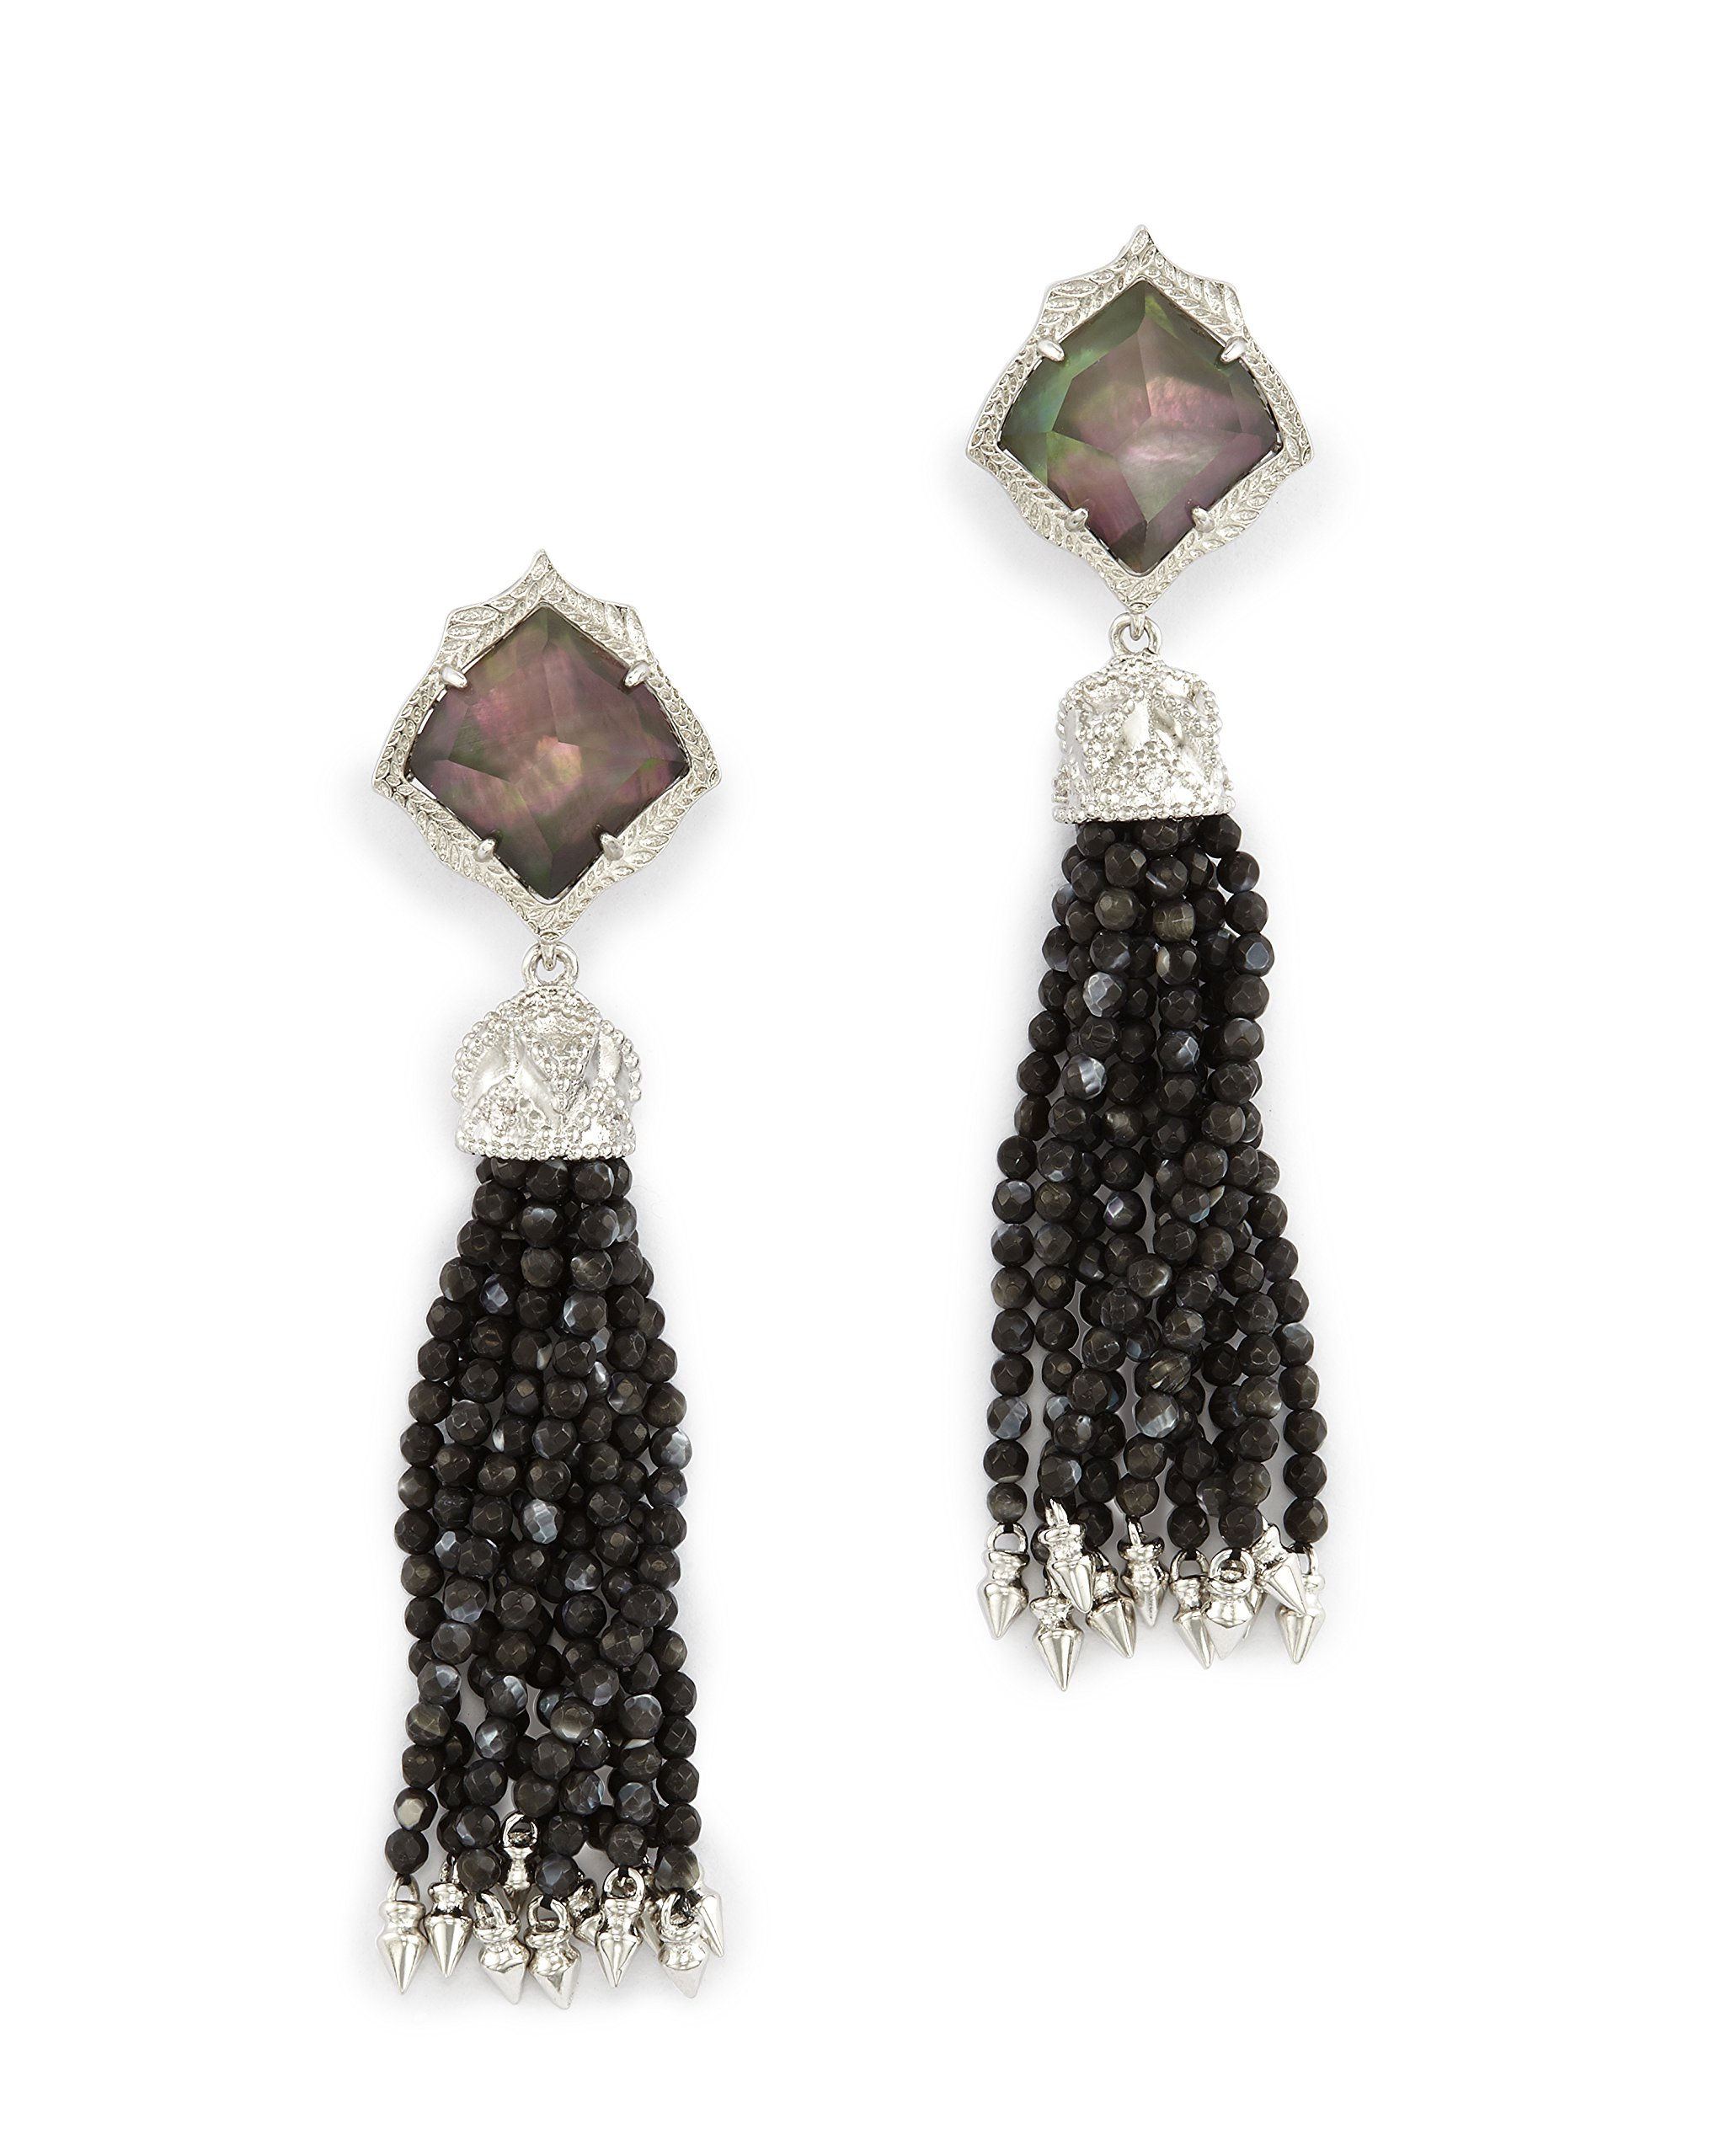 Kendra Scott Misha Clip On Earrings in Rhodium Plated Black Mother of Pearl